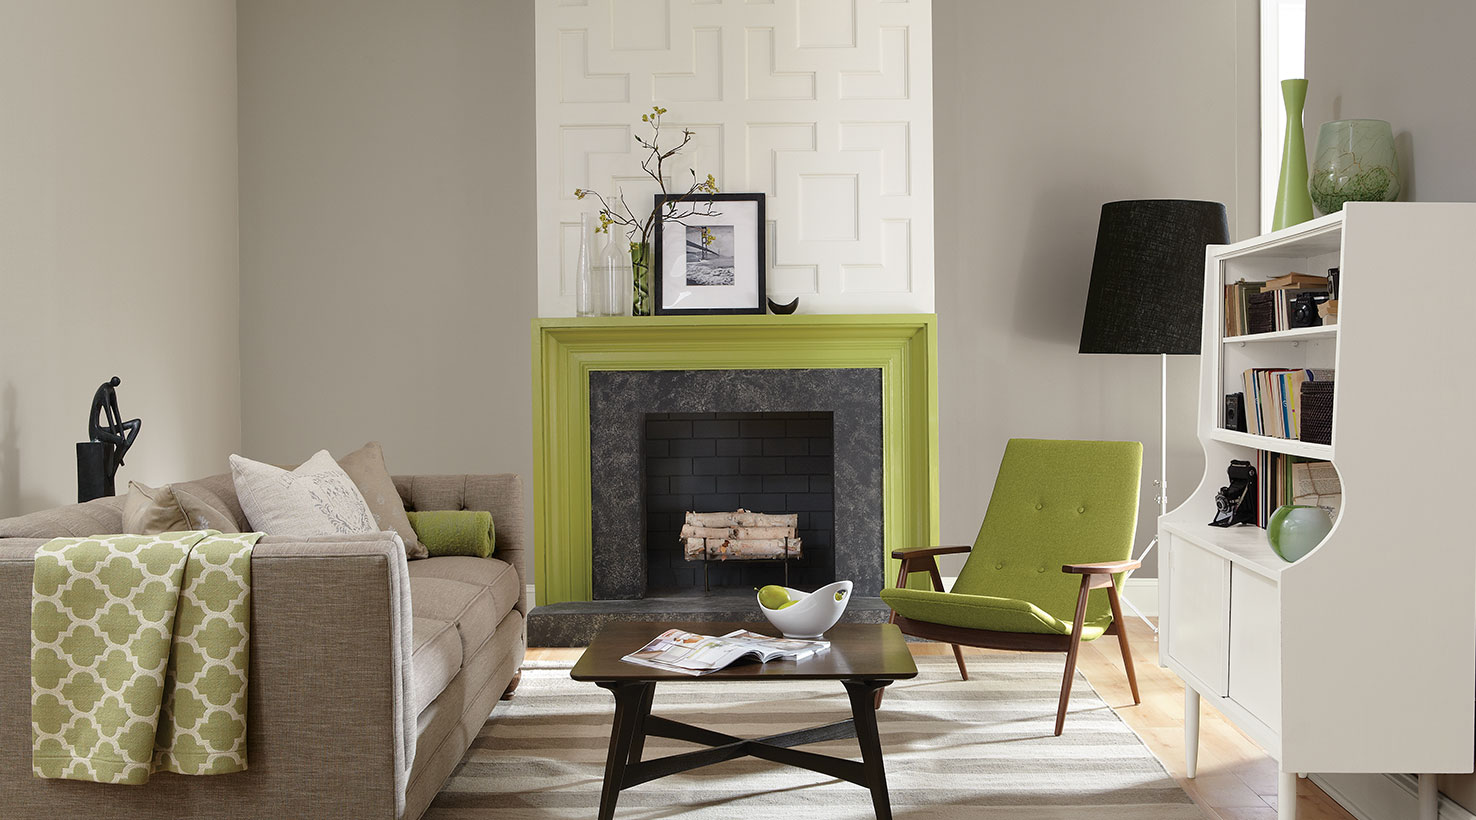 living room paint color ideas inspiration gallery on best neutral paint colors for living room sherwin williams living room id=95846